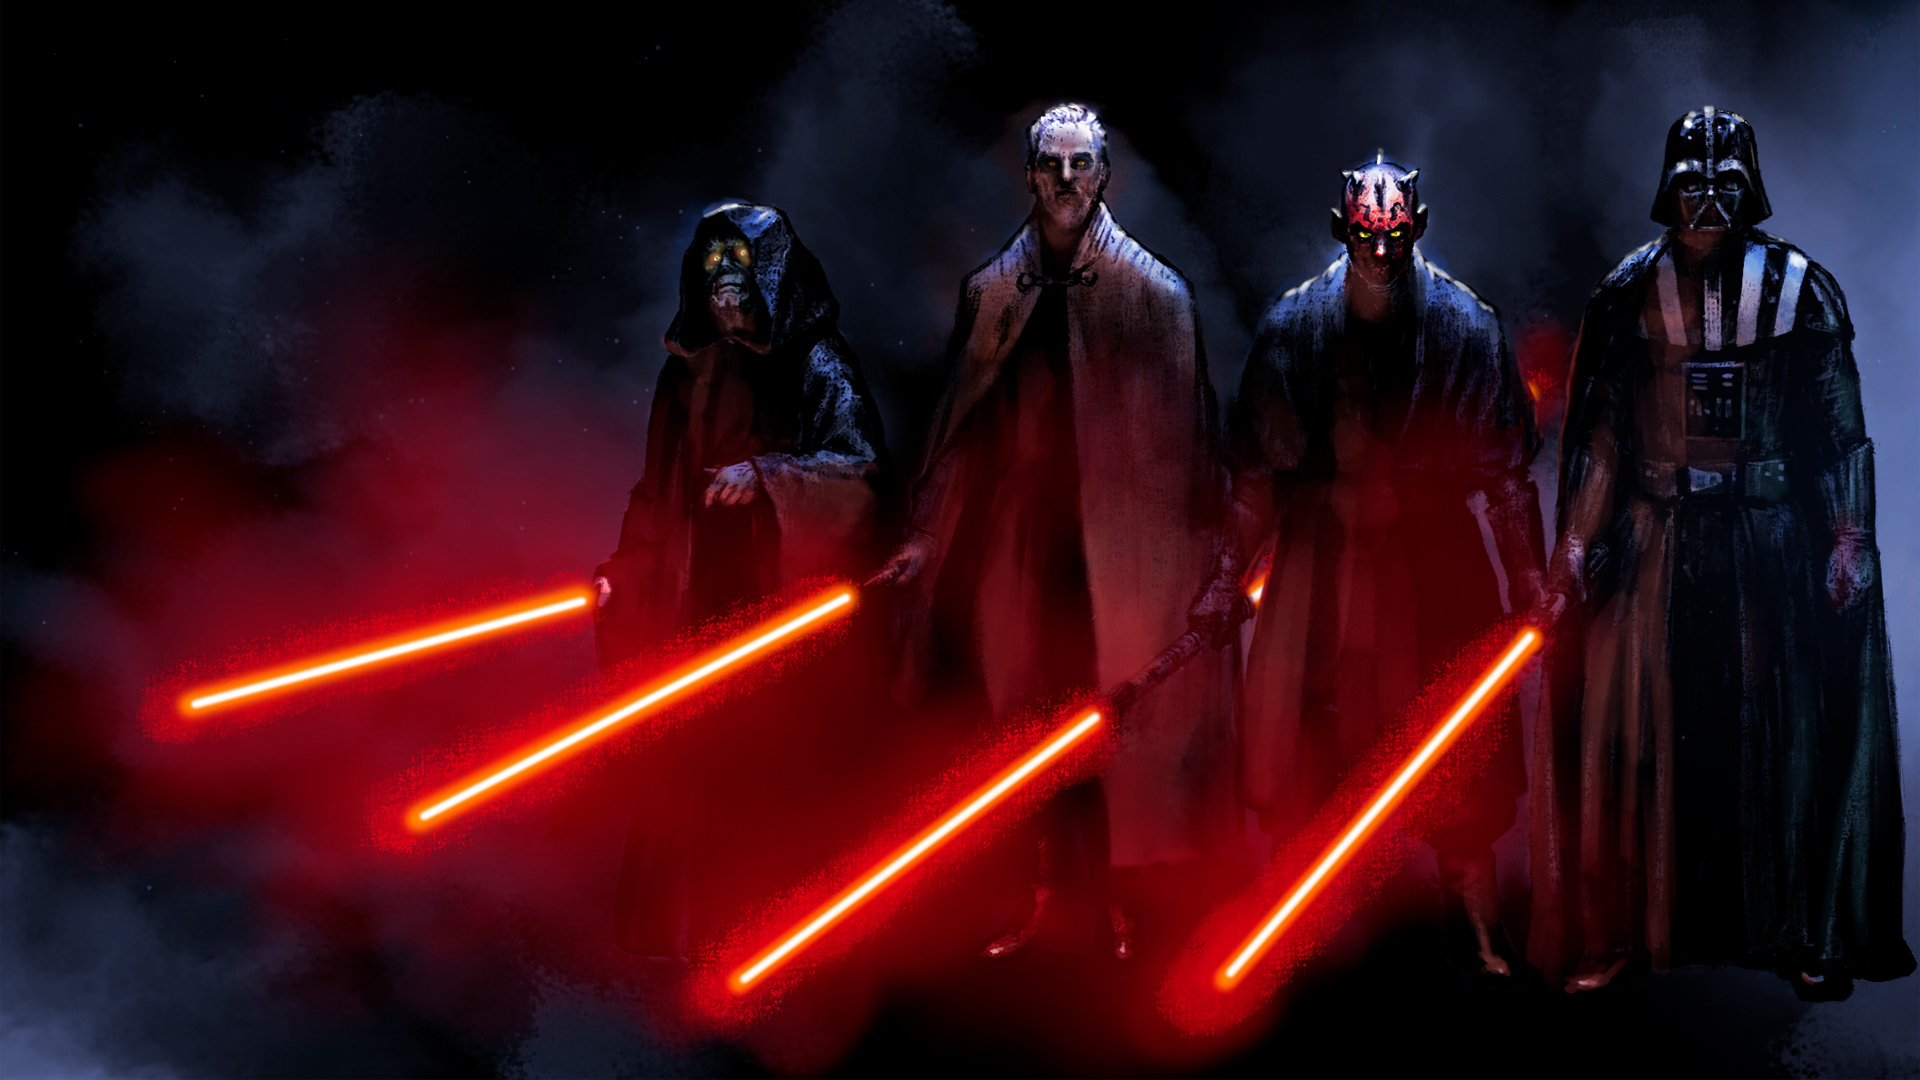 Star Wars Wallpaper   Sith from Shadow of Death   hosted by Neoseeker 1920x1080